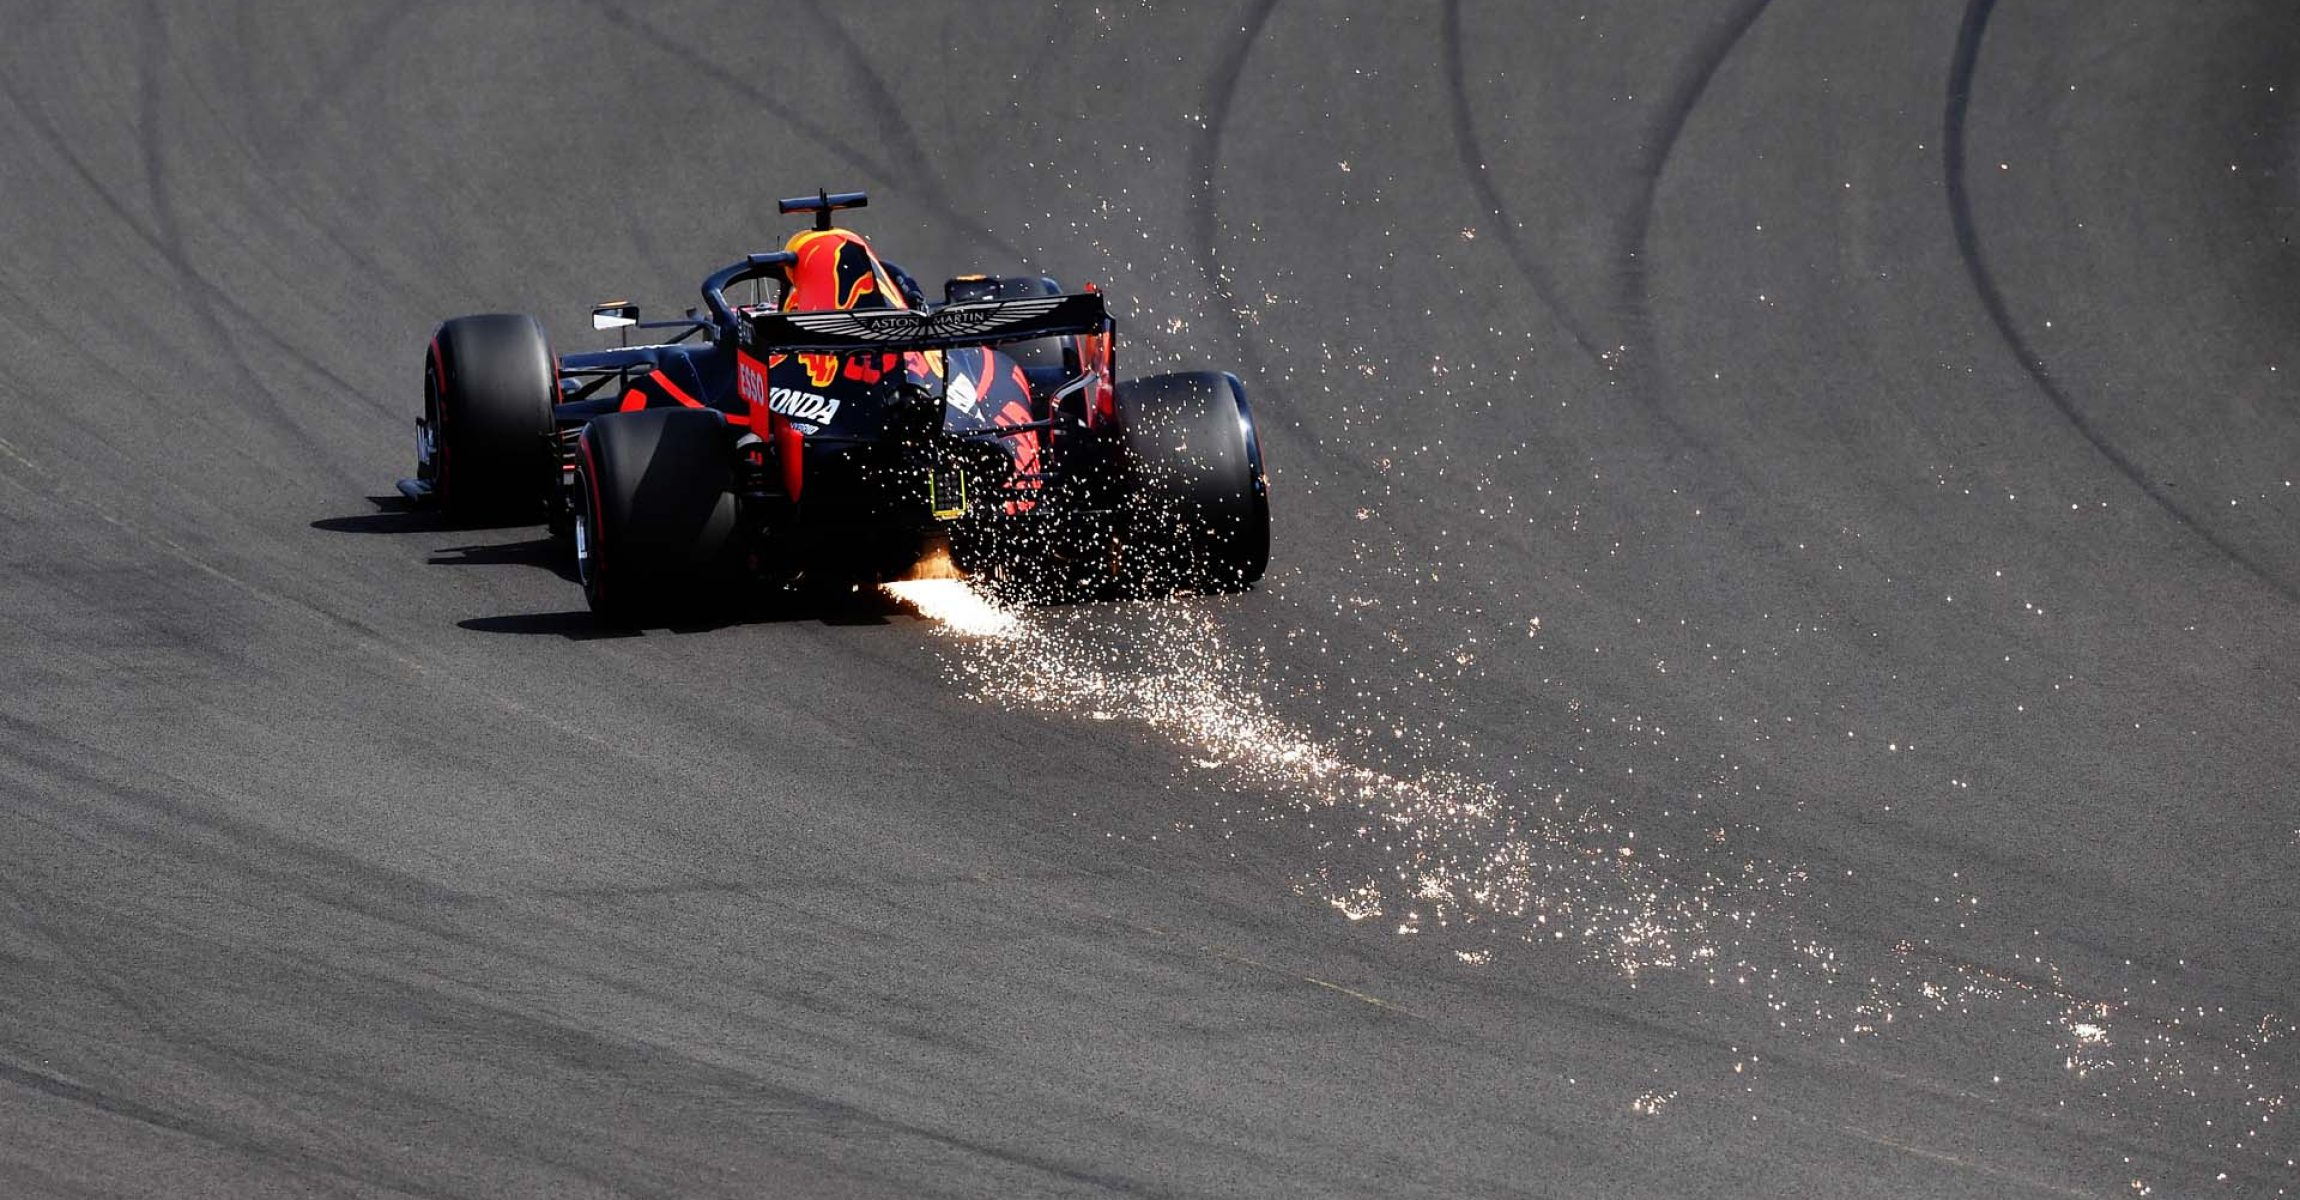 NORTHAMPTON, ENGLAND - AUGUST 08: Max Verstappen of the Netherlands driving the (33) Aston Martin Red Bull Racing RB16 on track during qualifying for the F1 70th Anniversary Grand Prix at Silverstone on August 08, 2020 in Northampton, England. (Photo by Ben Stansall/Pool via Getty Images)